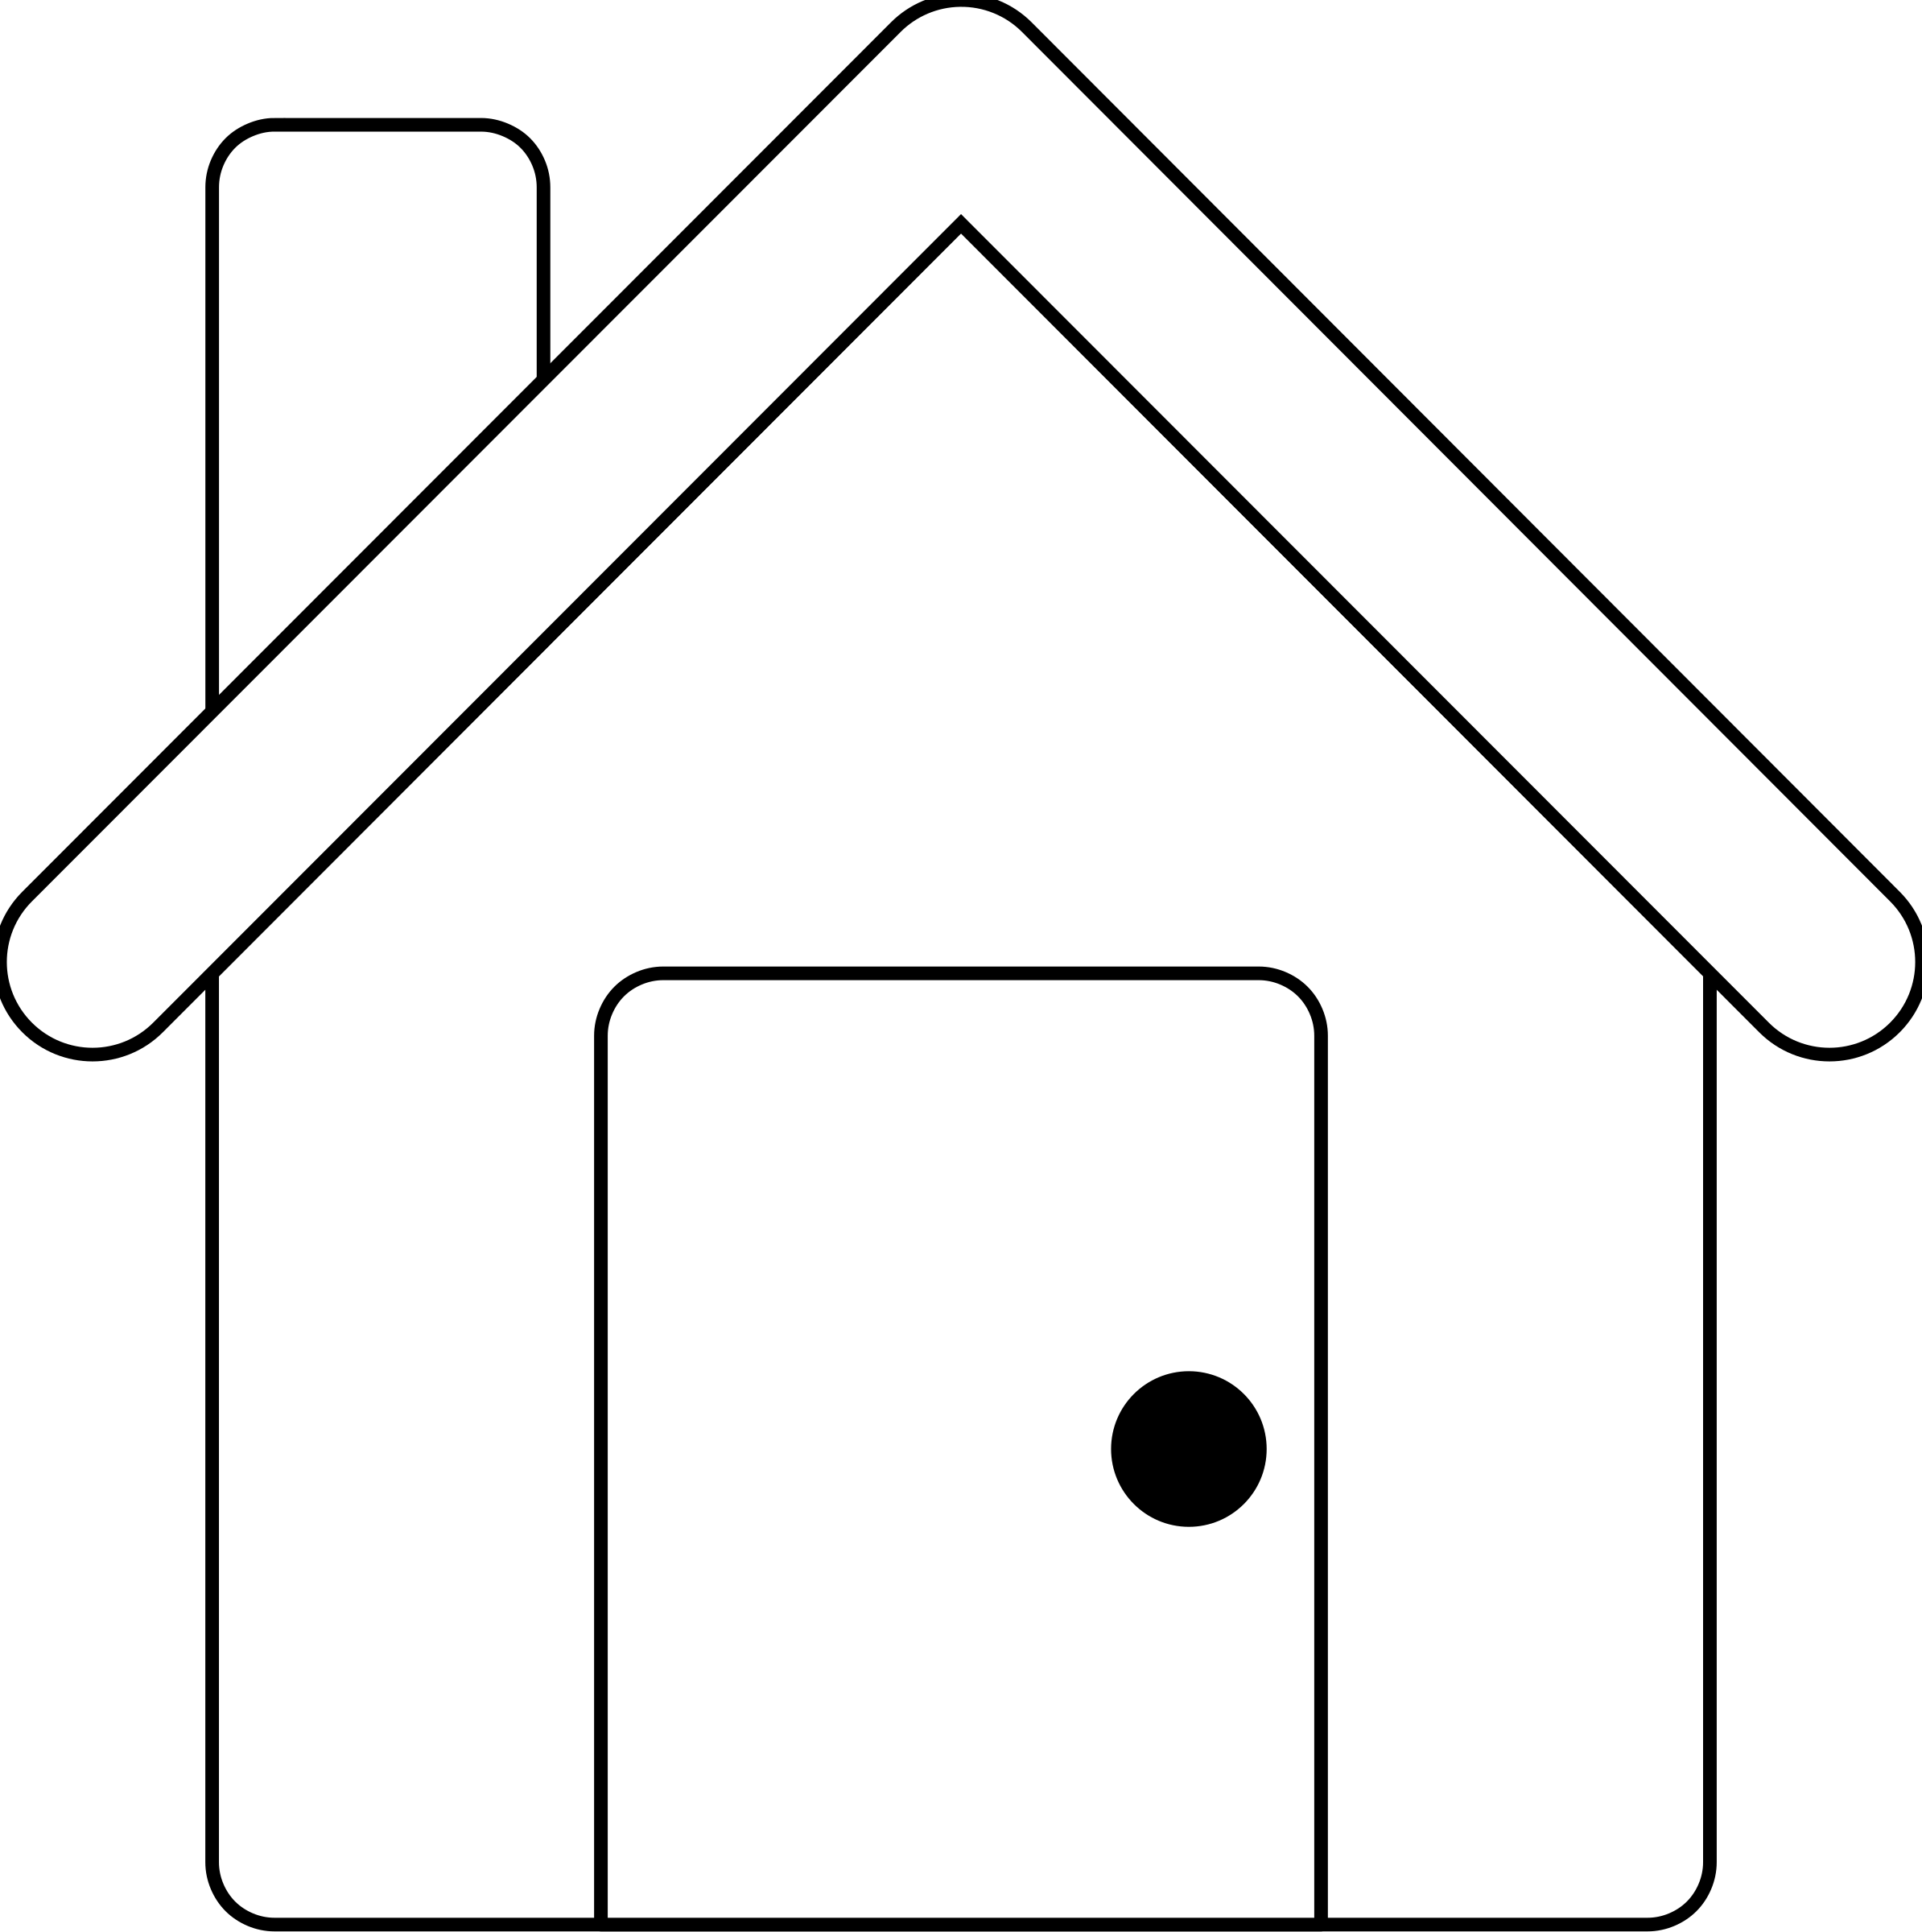 Line Art Images Of Houses : Clipart house line art